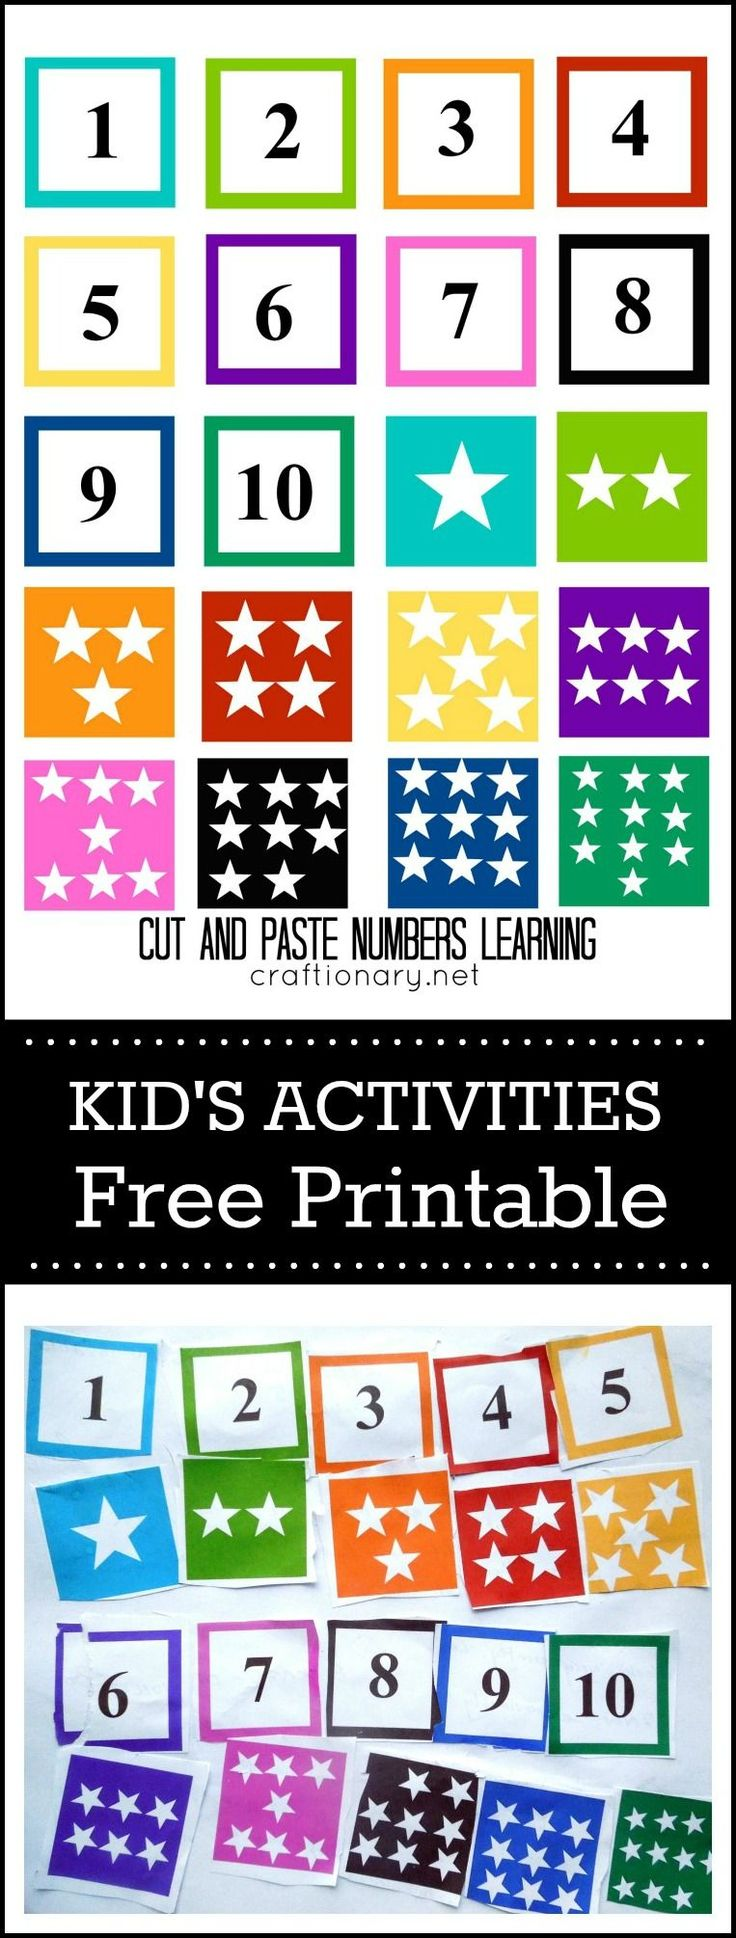 Printables 1to20table 1000 ideas about free printable numbers on pinterest project cut and paste activity great for kids during march break